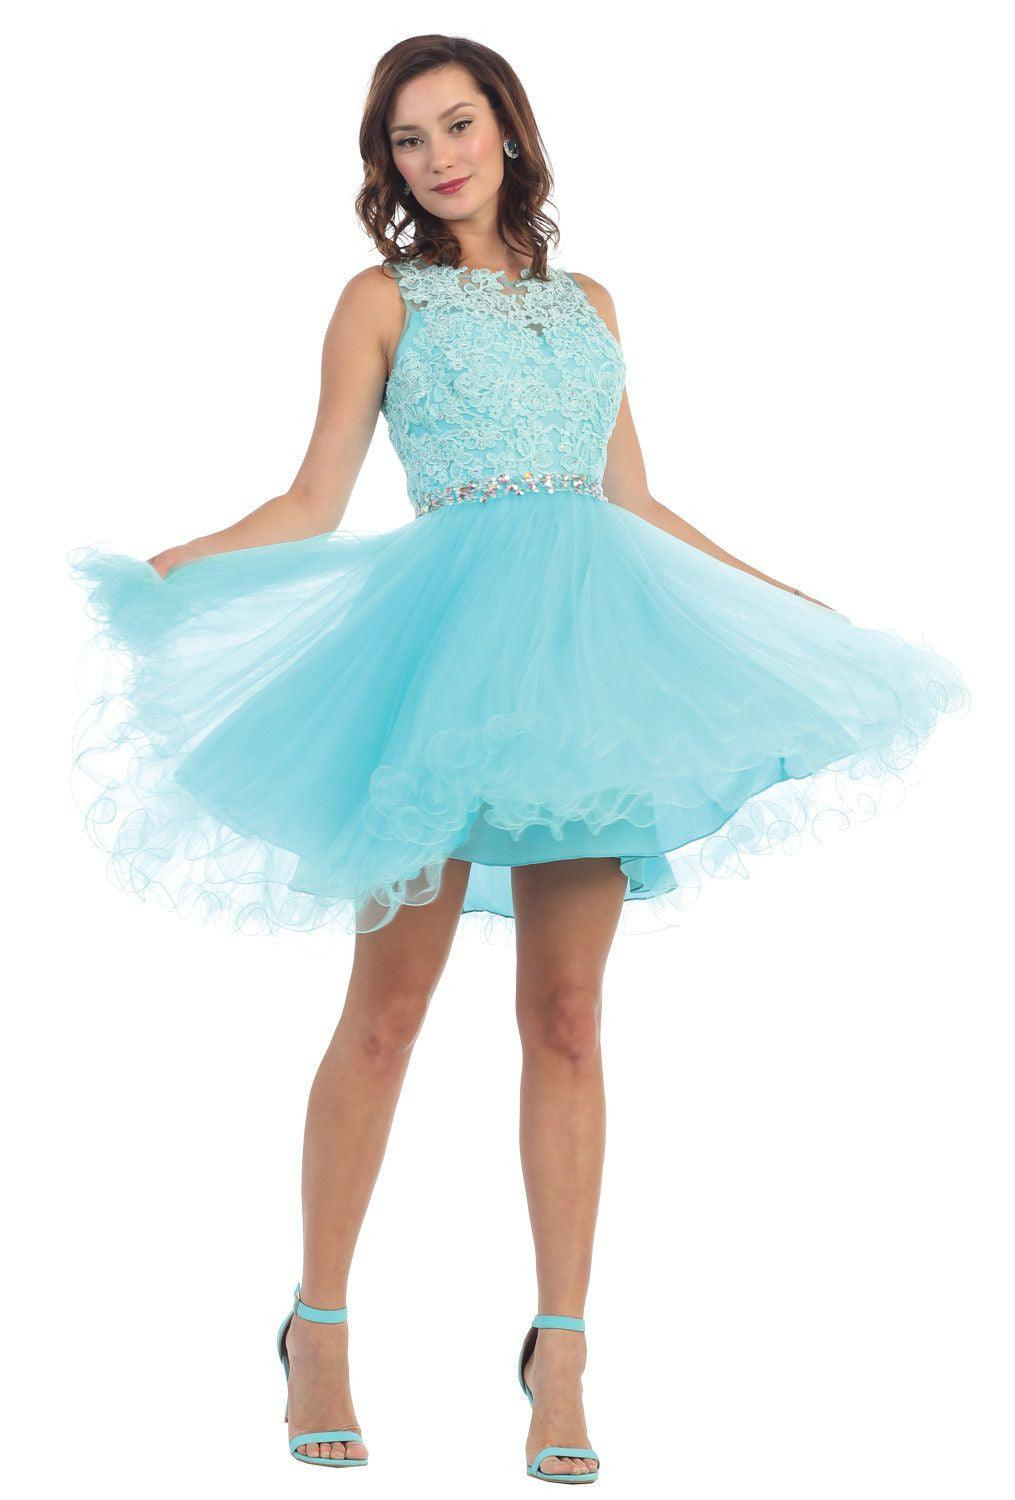 Short Prom Homecoming Graduation Dress - The Dress Outlet Aqua